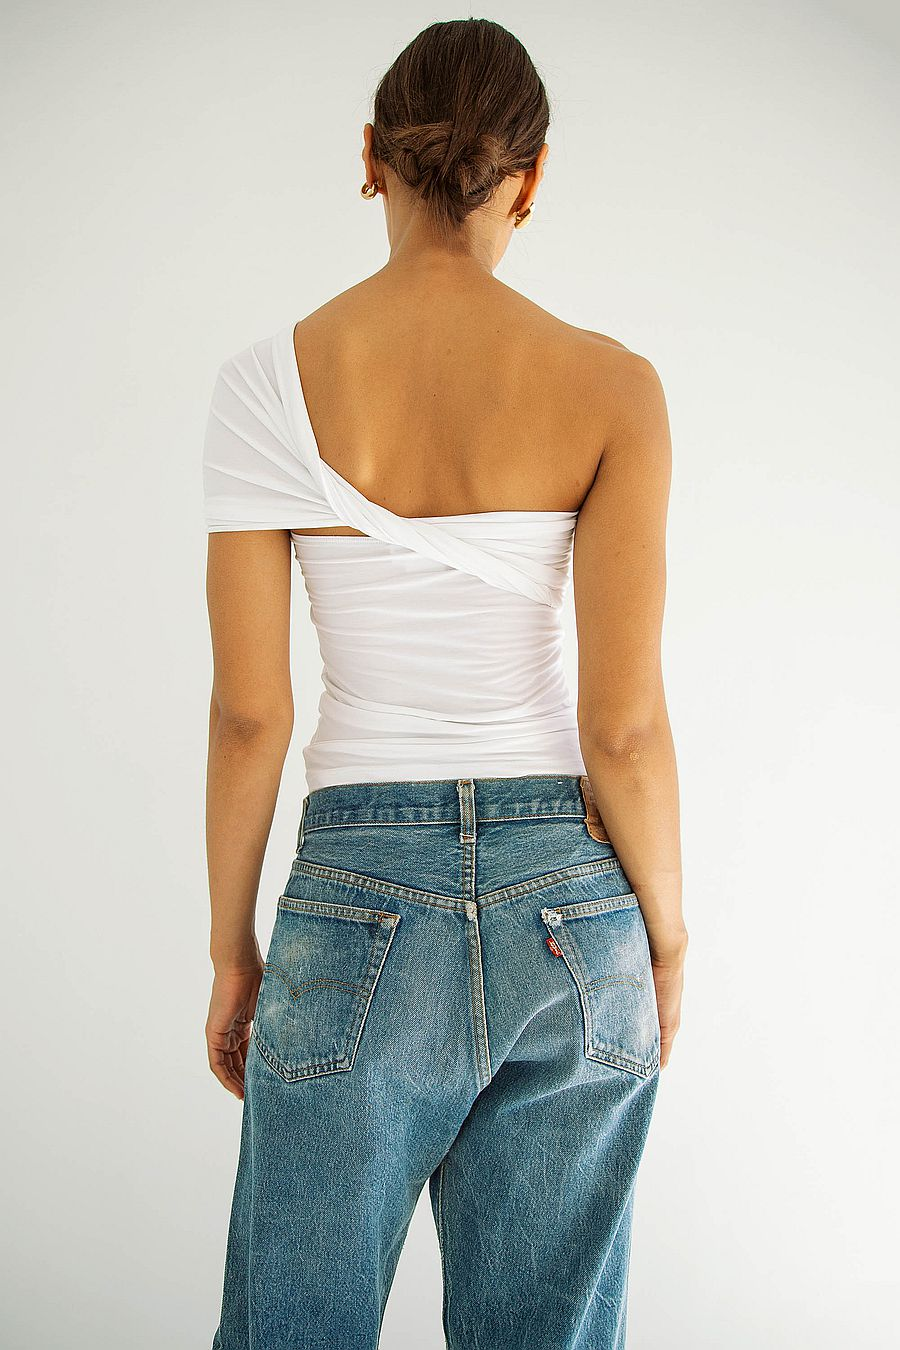 The Line by K Kyo Tube Top - White